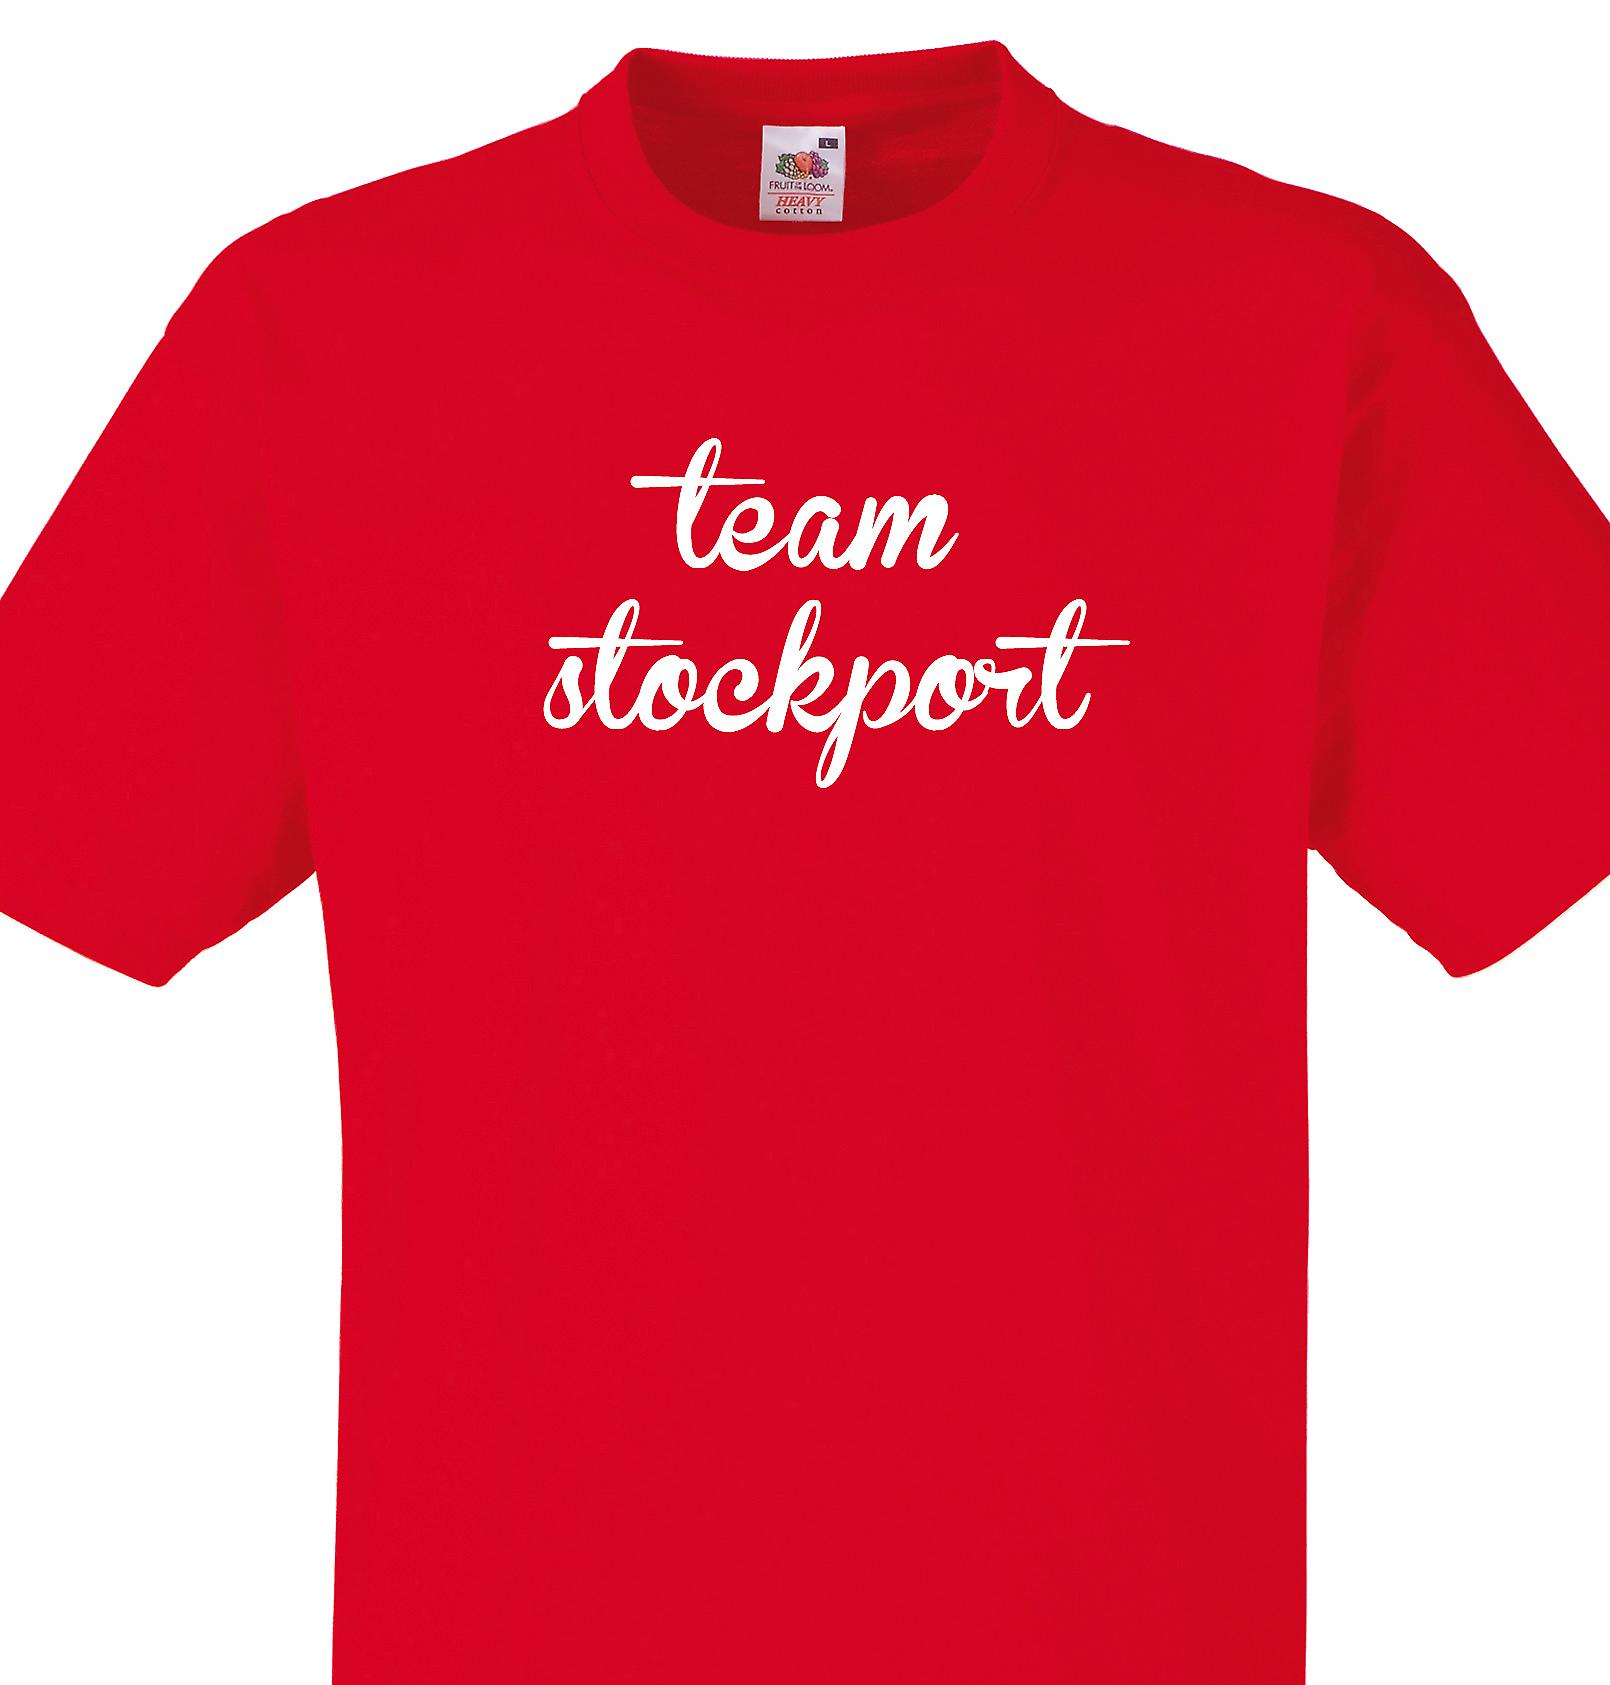 Team Stockport Red T shirt